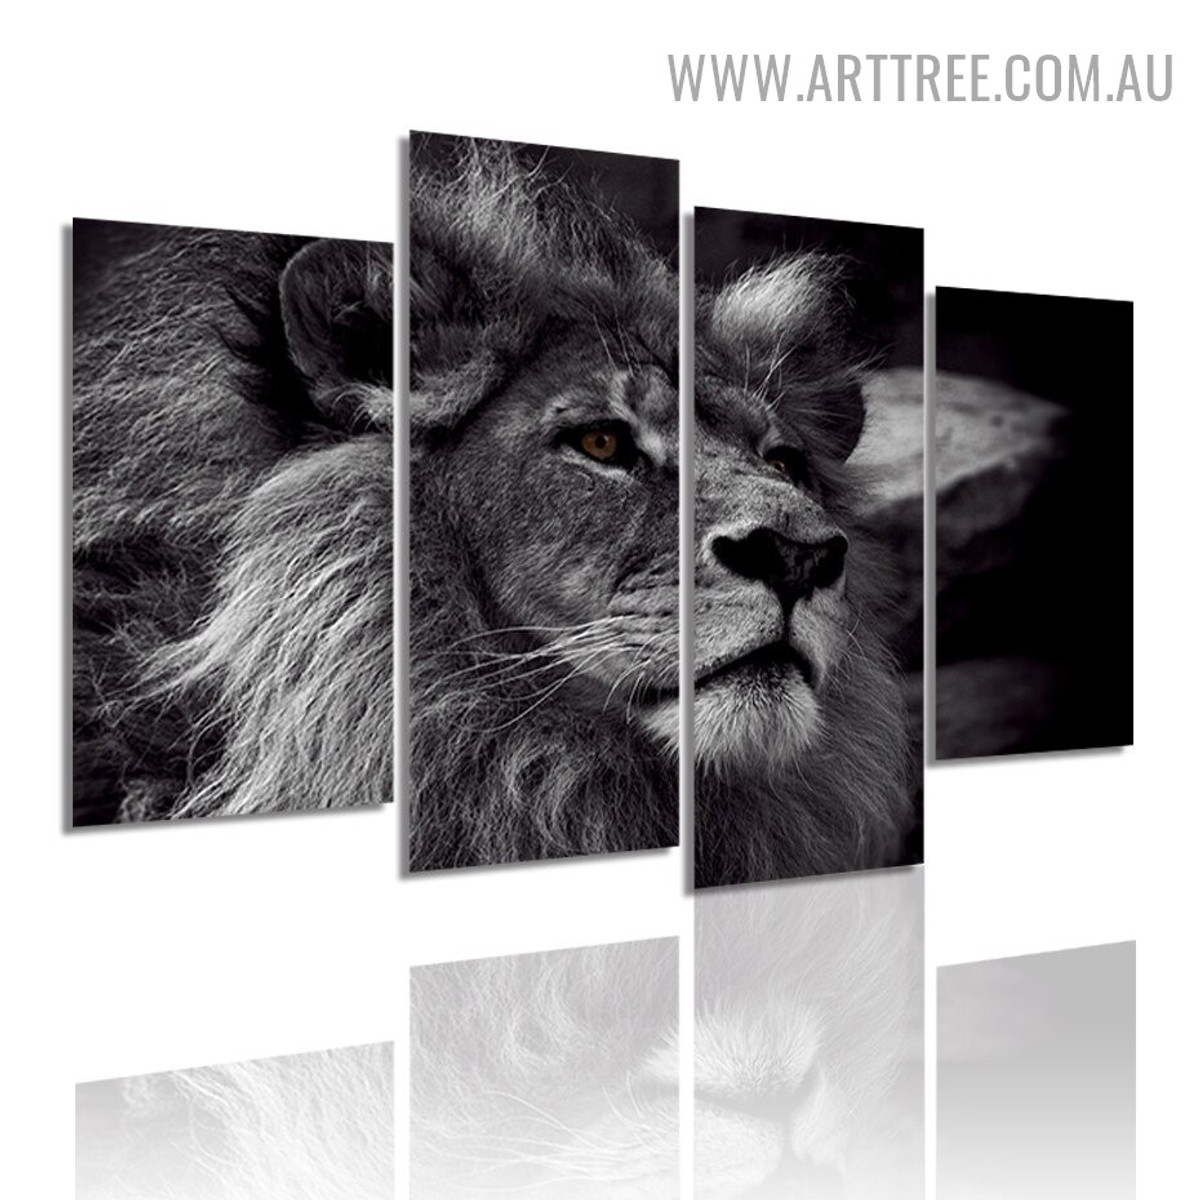 African Wild Cat Lion Animal Modern 5 Piece Large Canvas Wall Art Image Canvas Print for Room Illumination